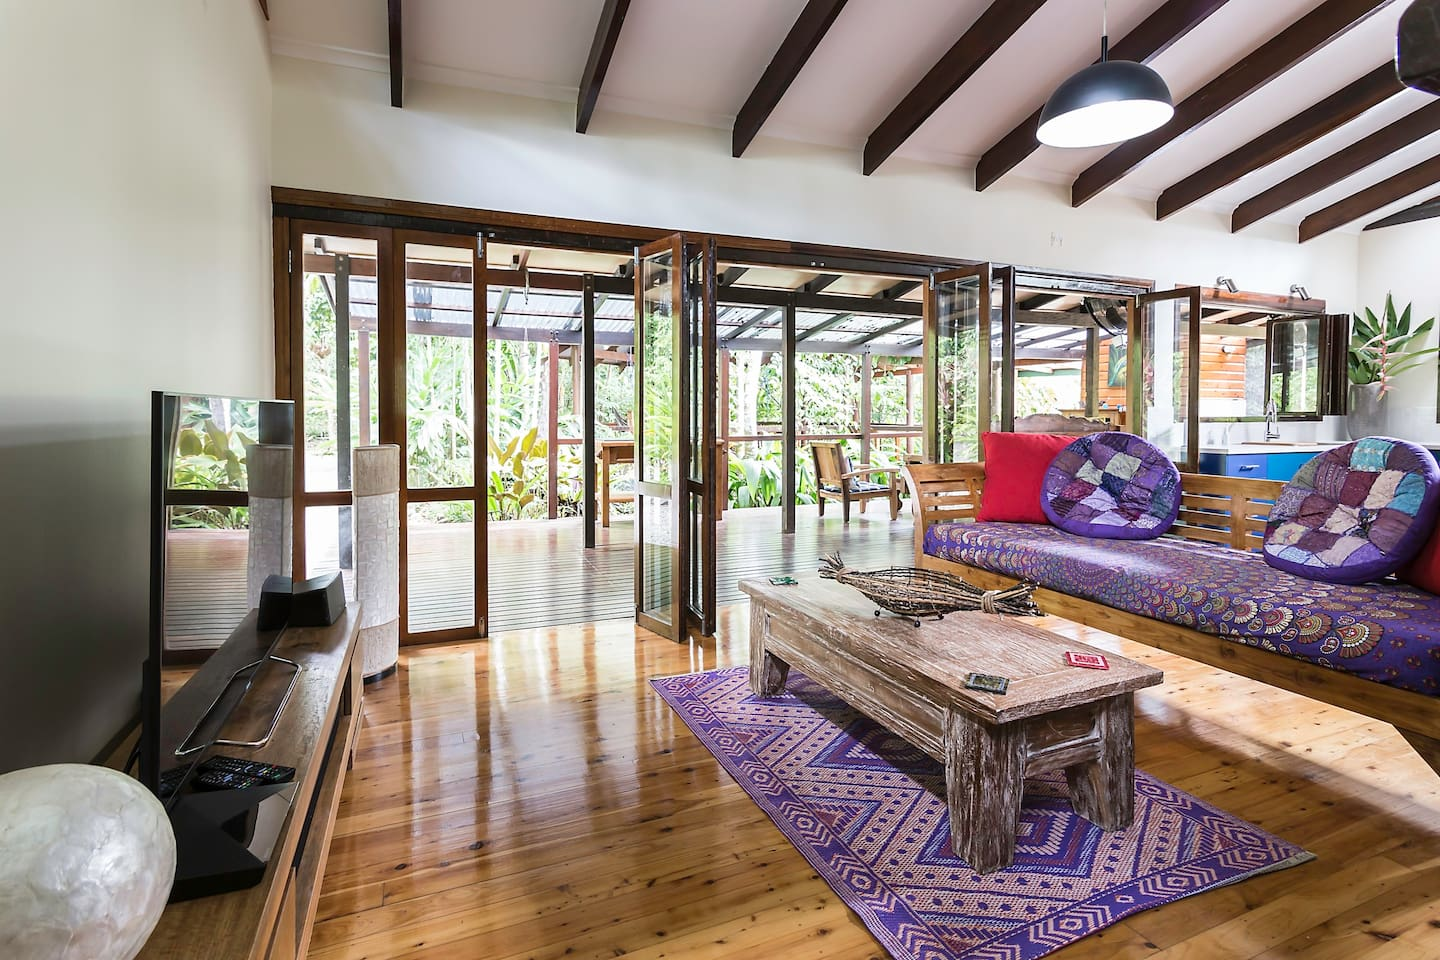 A rainforest wilderness - 2 bedroom sun drenched eco-house on a rare exotic fruit orchard with 5 acres of world heritage rainforest